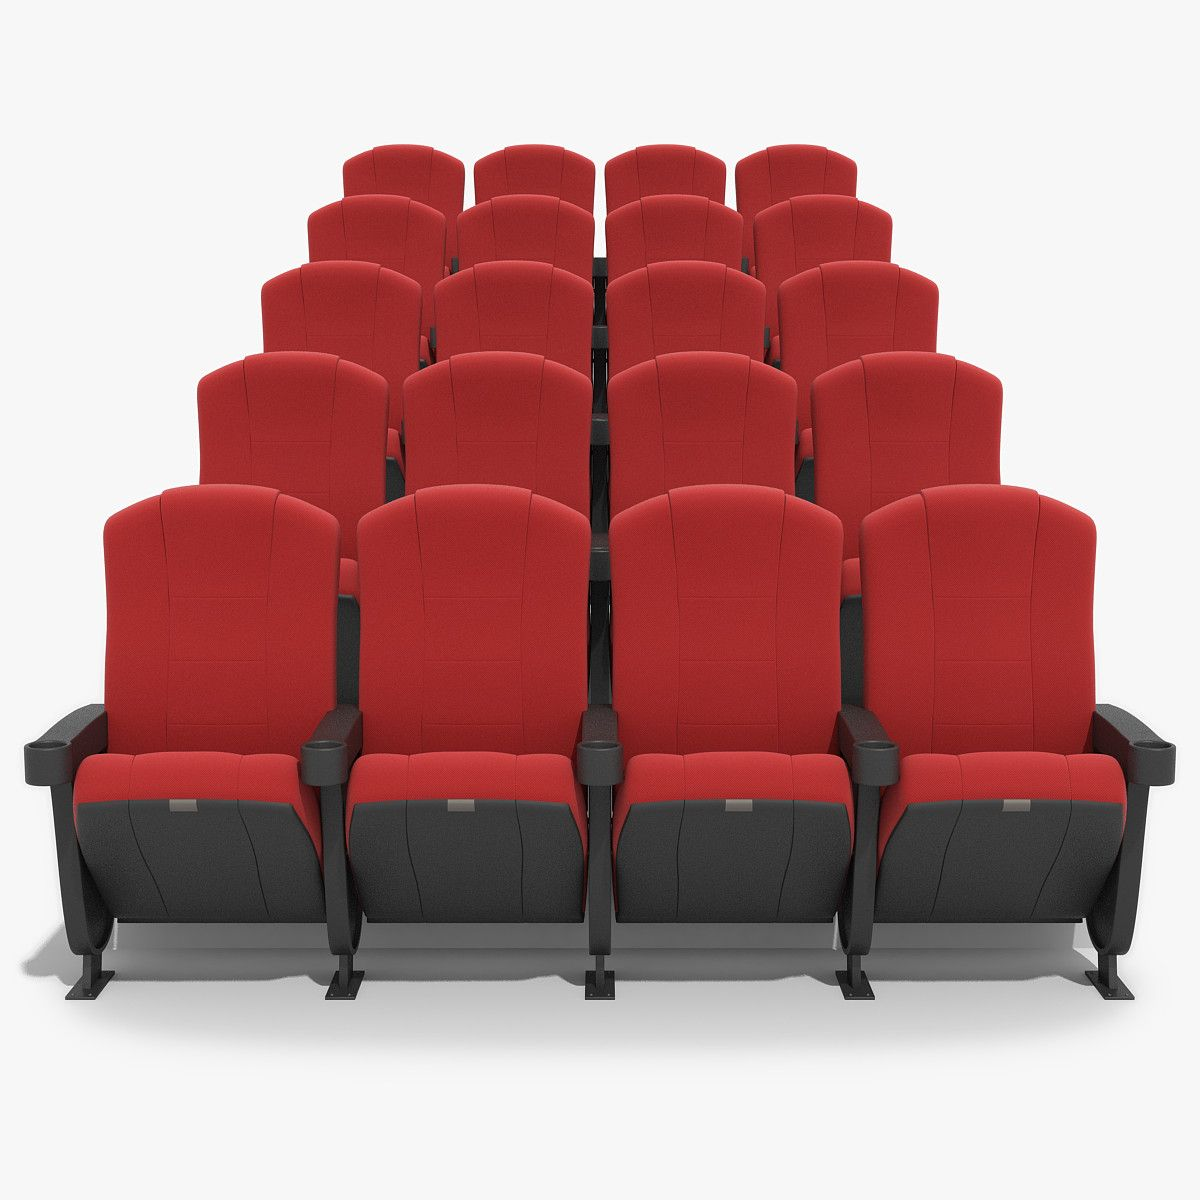 Movie Theater Chairs Movie Theater Chairs Bad Designs Pinterest Movie